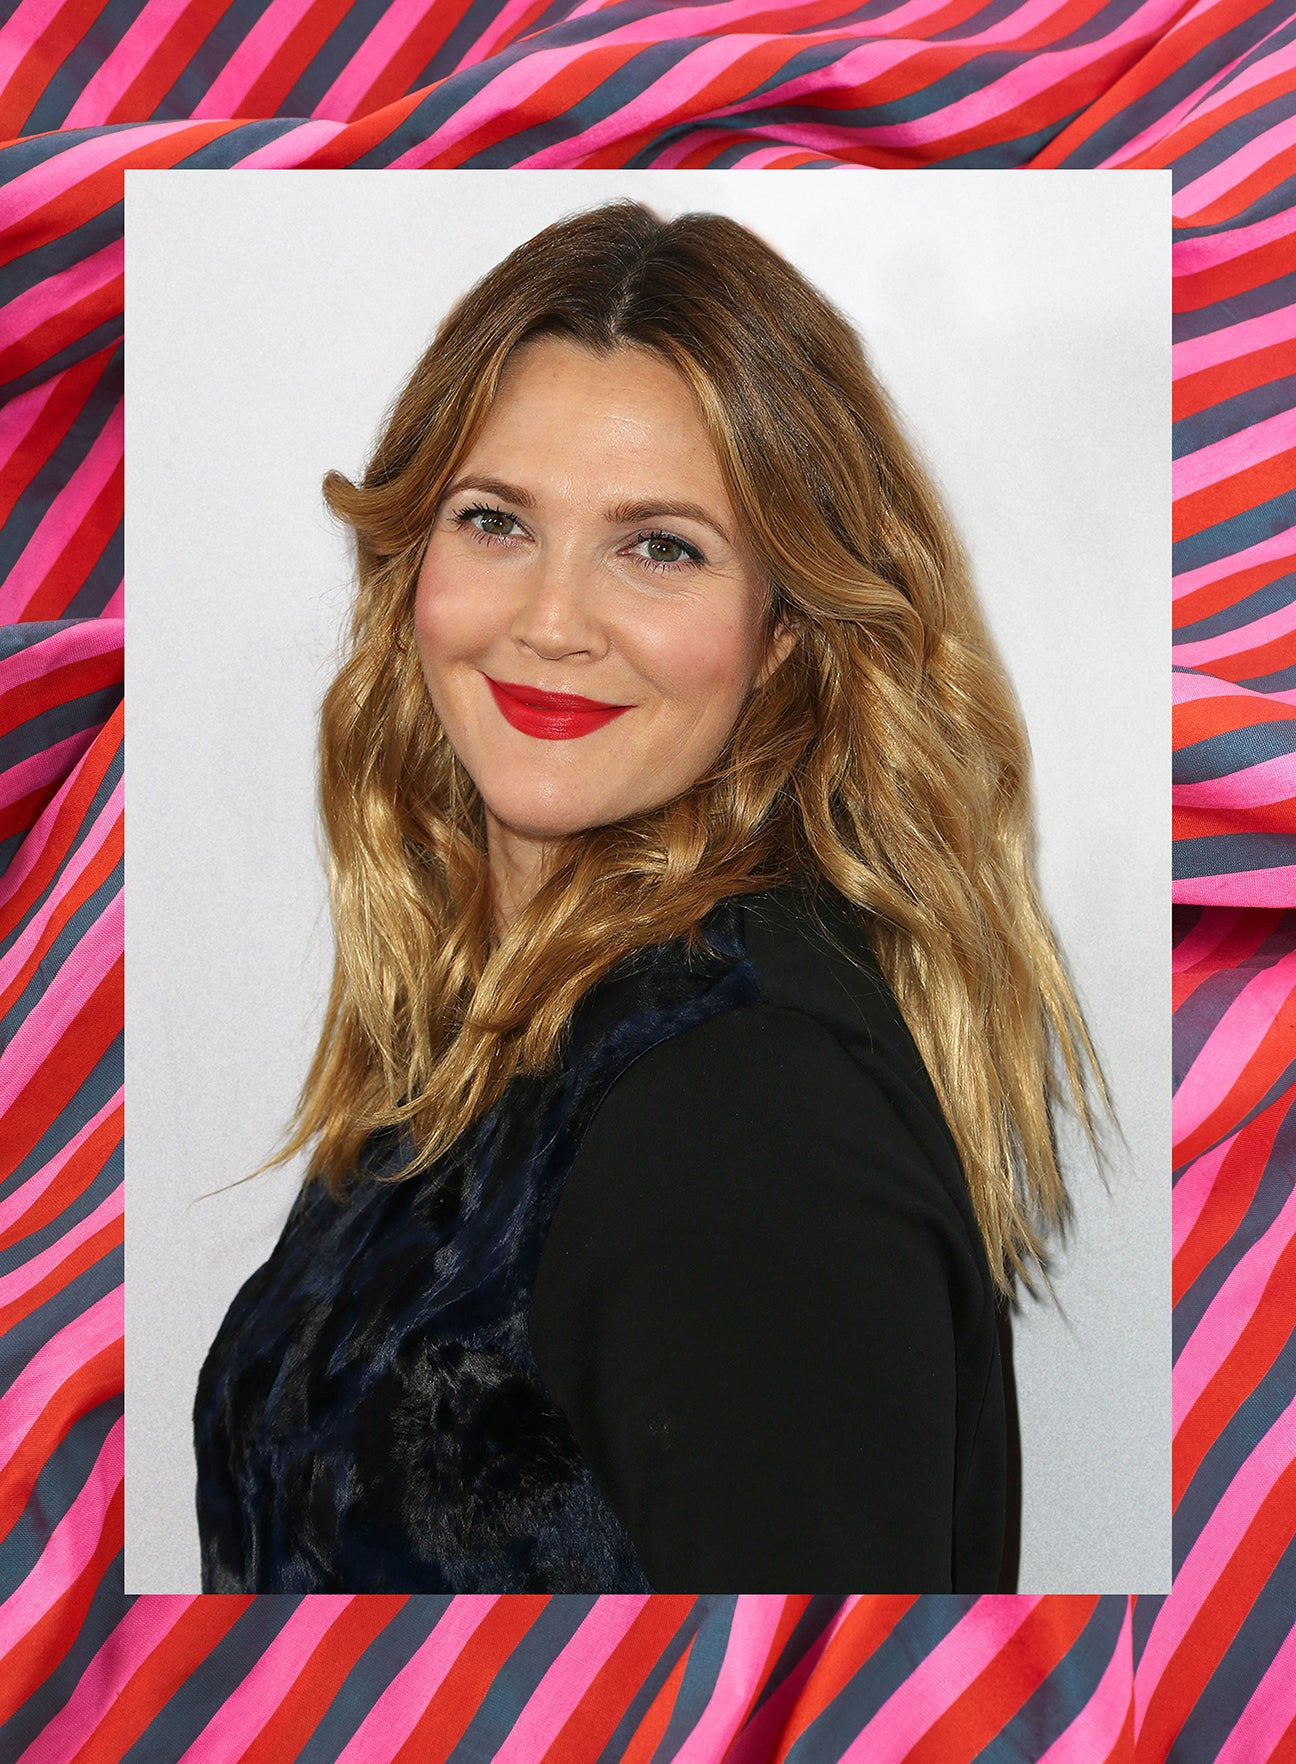 drew barrymore against a pink background